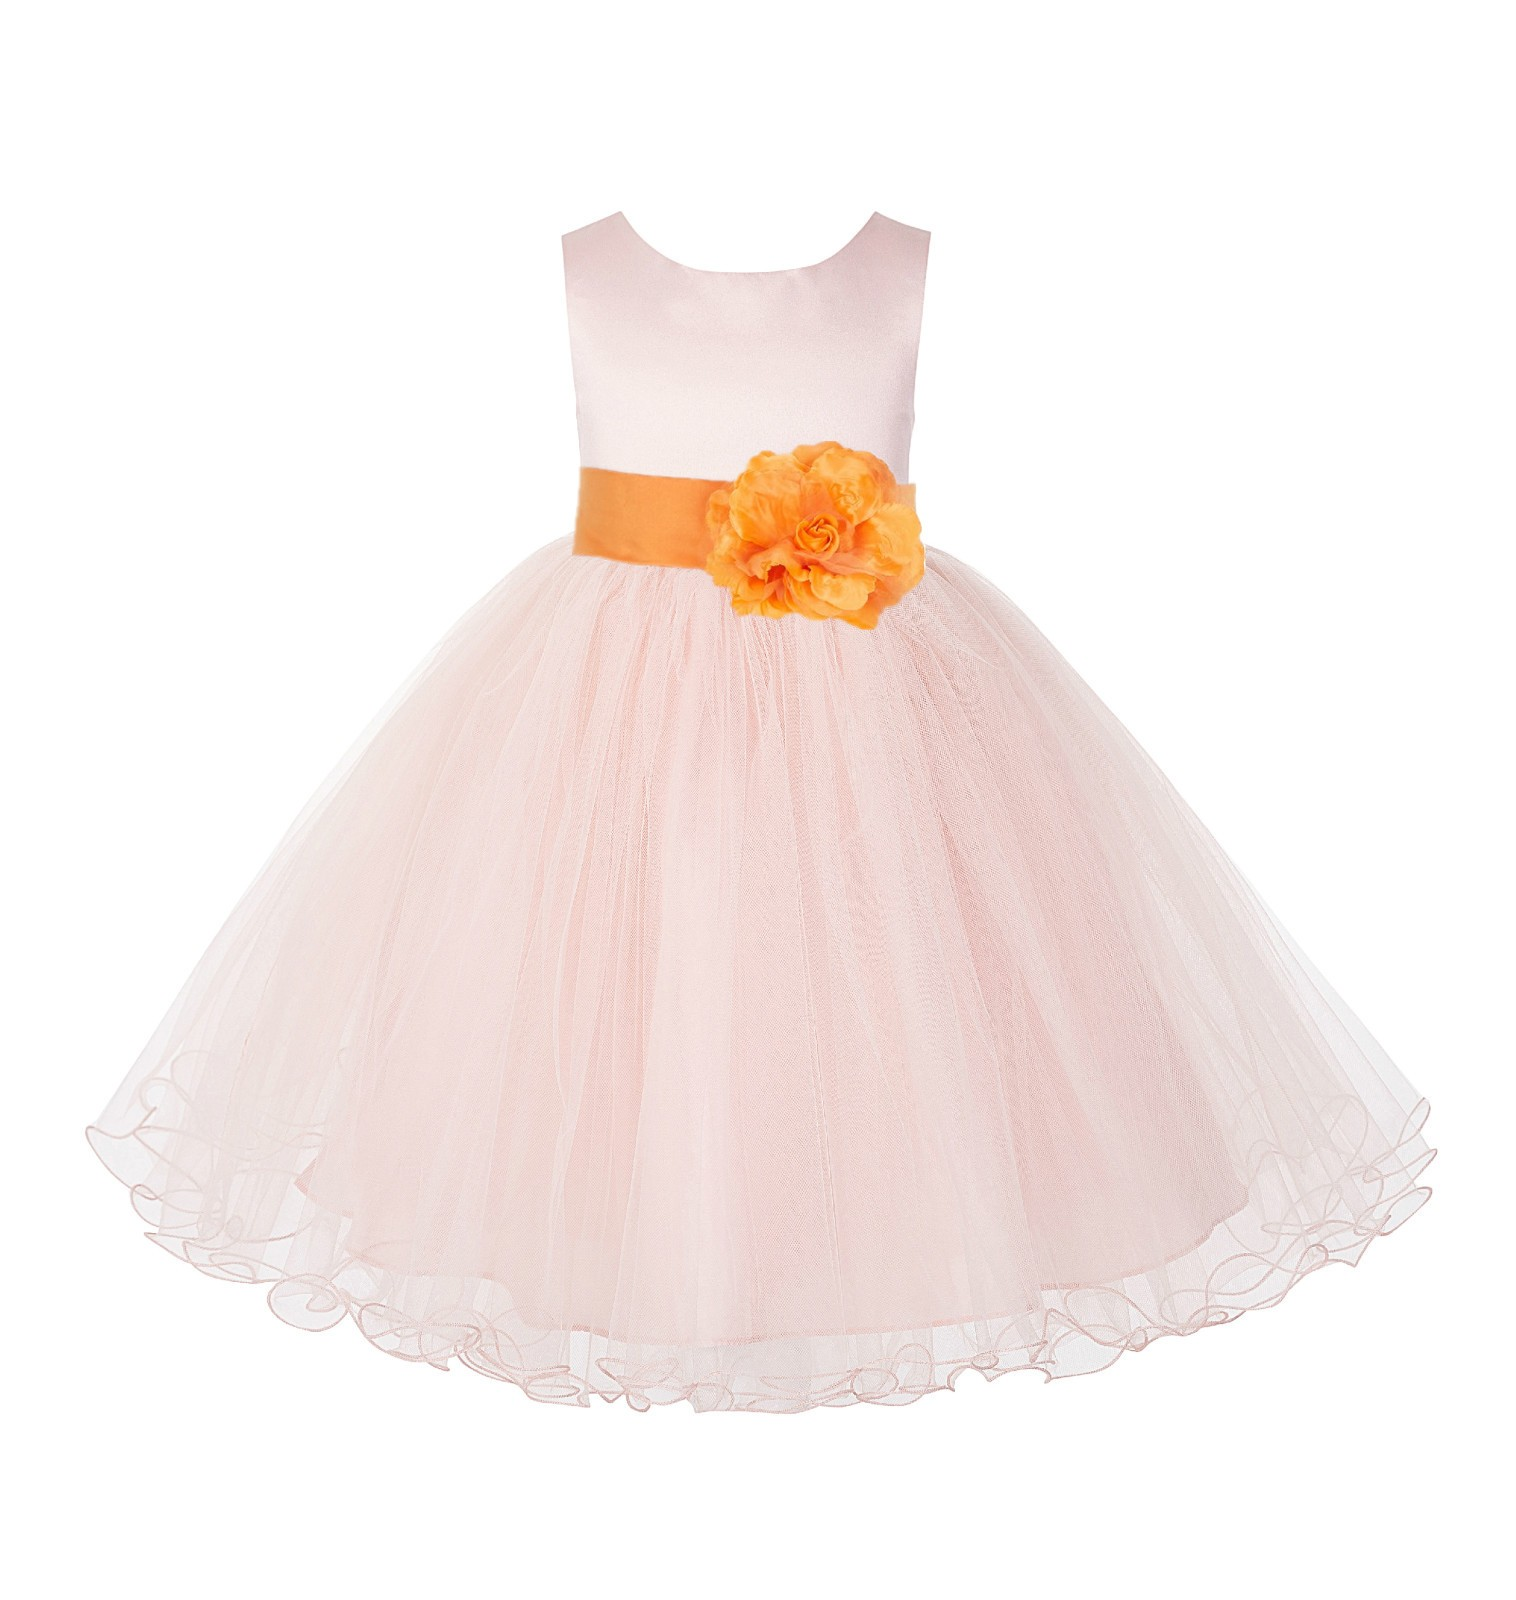 Blush Pink / Orange Tulle Rattail Edge Flower Girl Dress Pageant Recital 829S